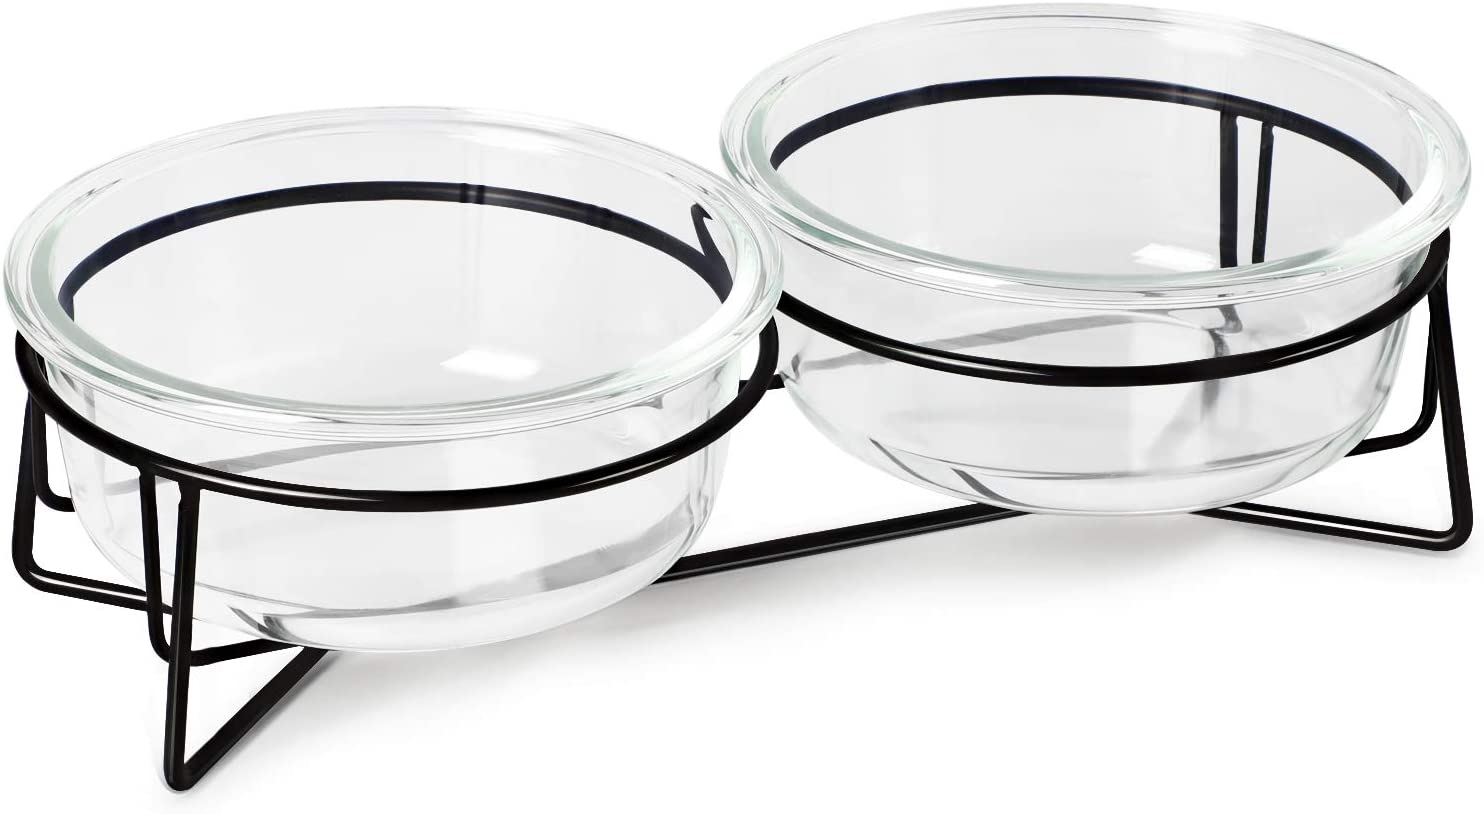 MUZITY Glass Raised Cat Bowls, Pet Food and Water Dishes with Metal Stand,20 Ounces (Transparent)